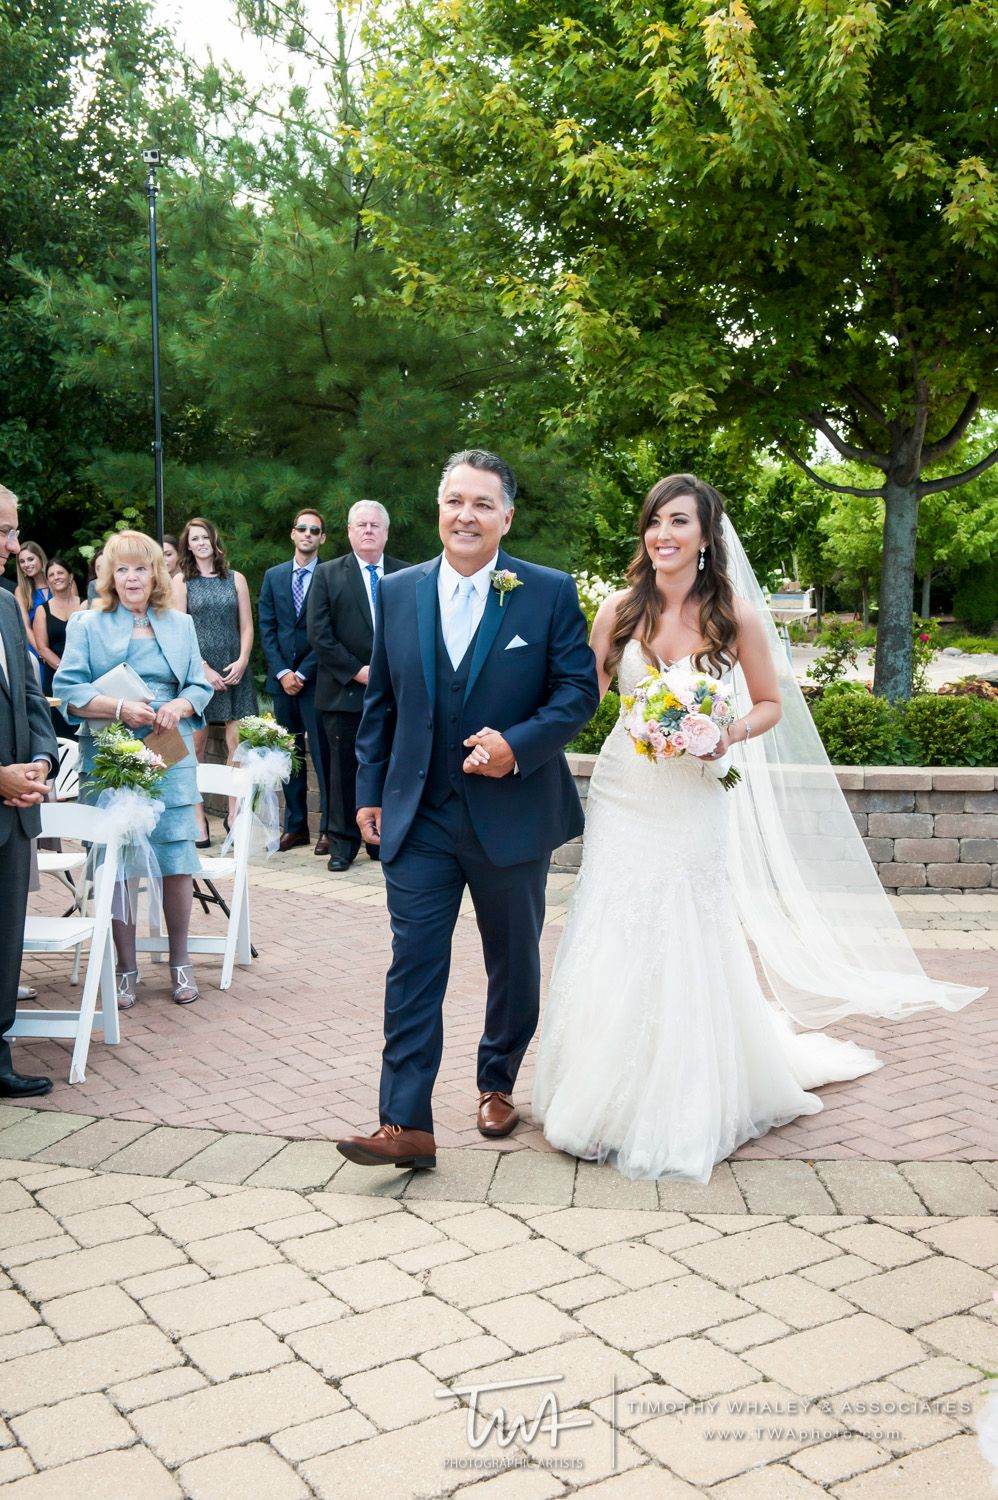 TWA Weddings at CD & Me | Click the picture to visit our website!